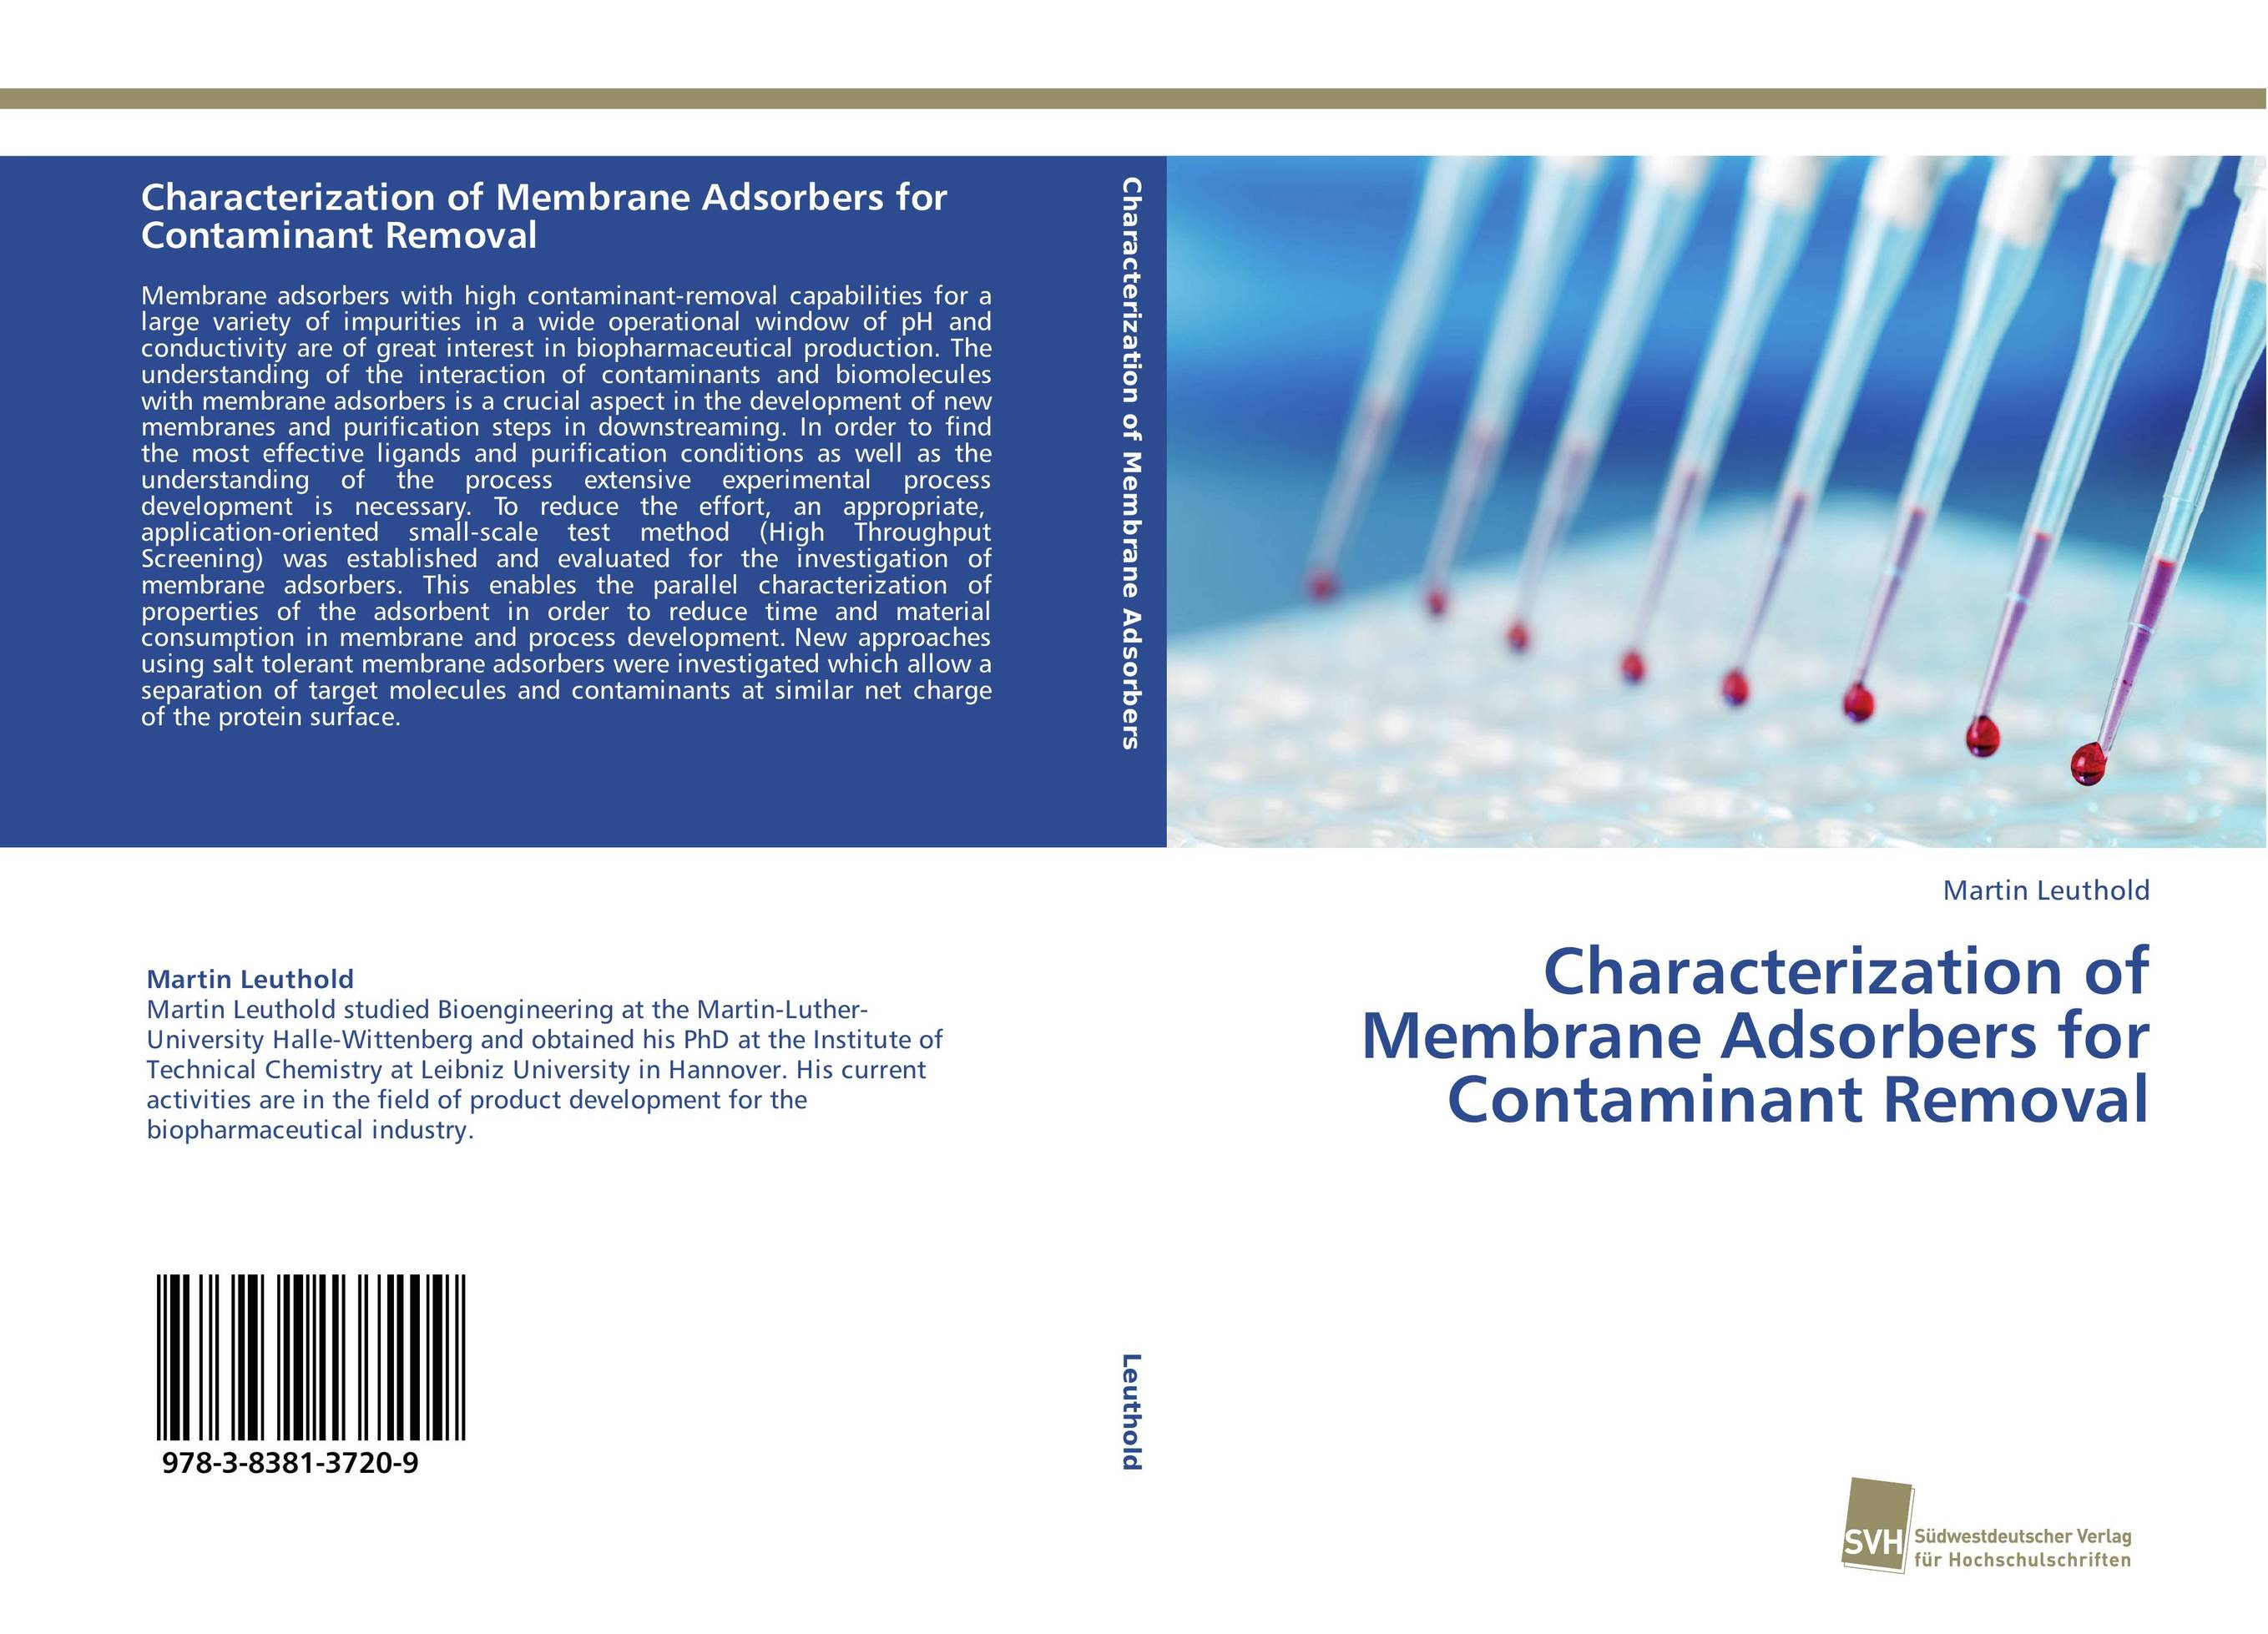 Characterization of Membrane Adsorbers for Contaminant Removal handbook of isolation and characterization of impurities in pharmaceuticals 5